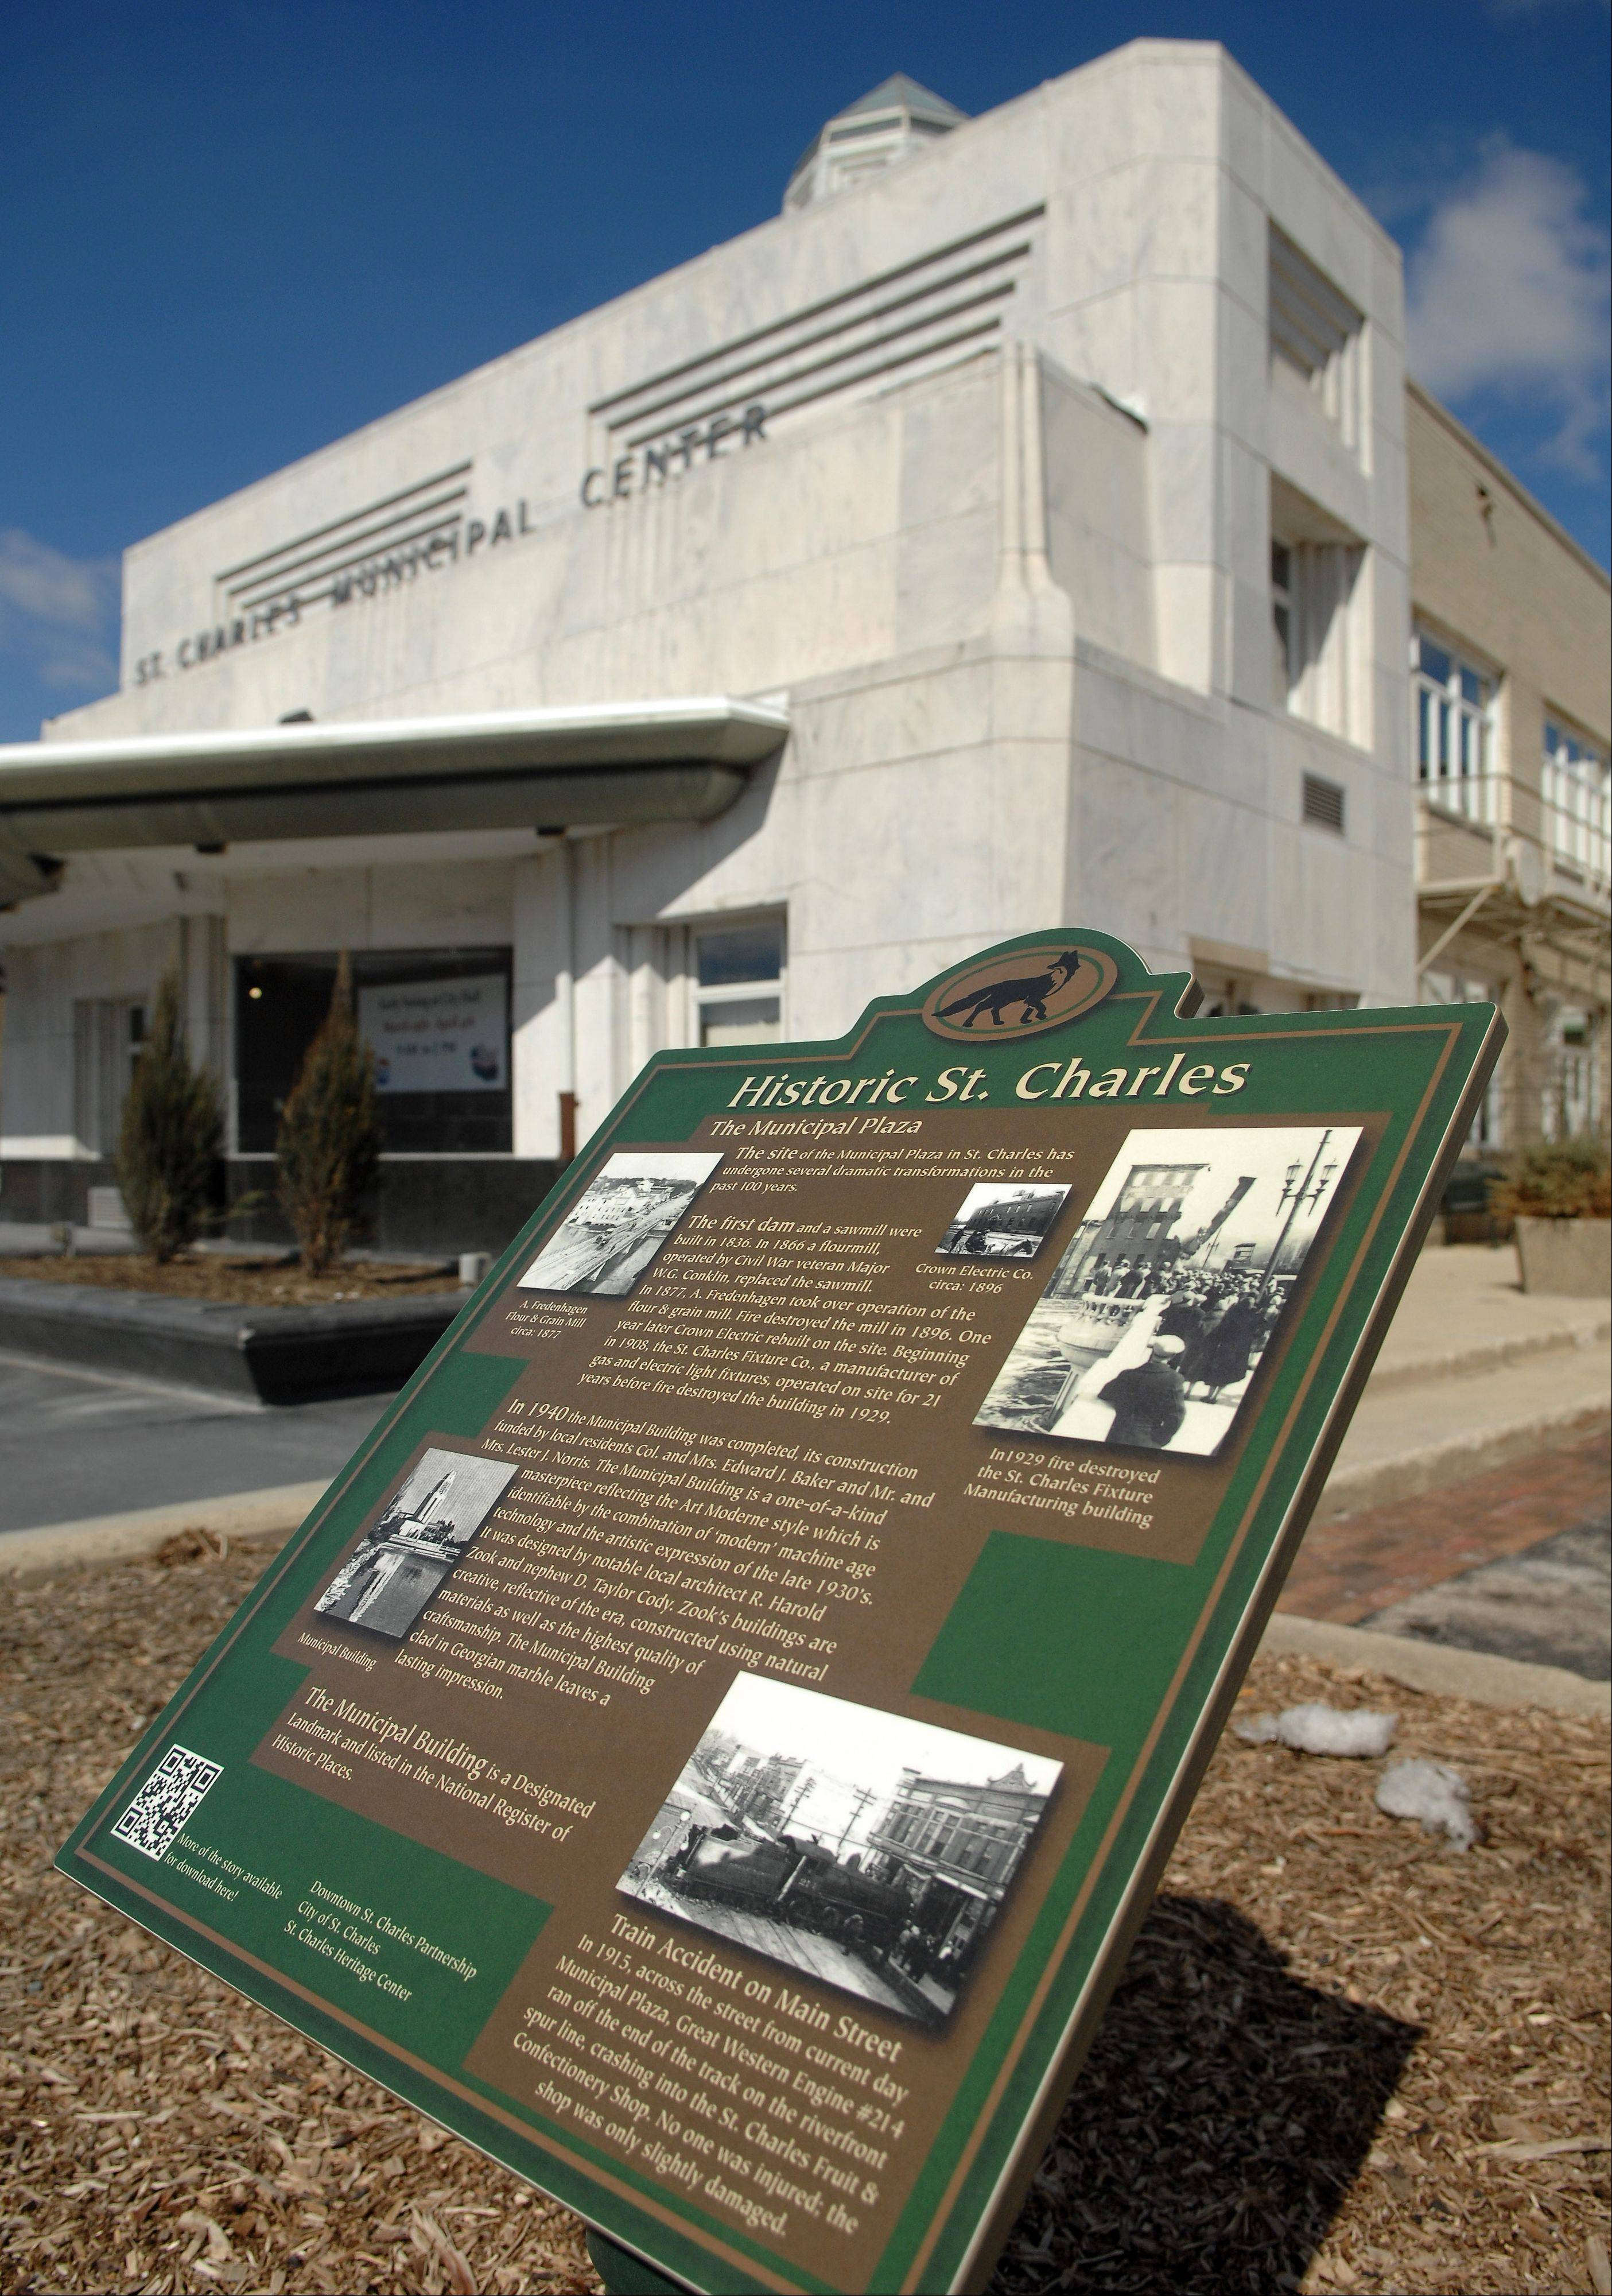 A new historic marker sits in downtown St. Charles in front of the municipal center.